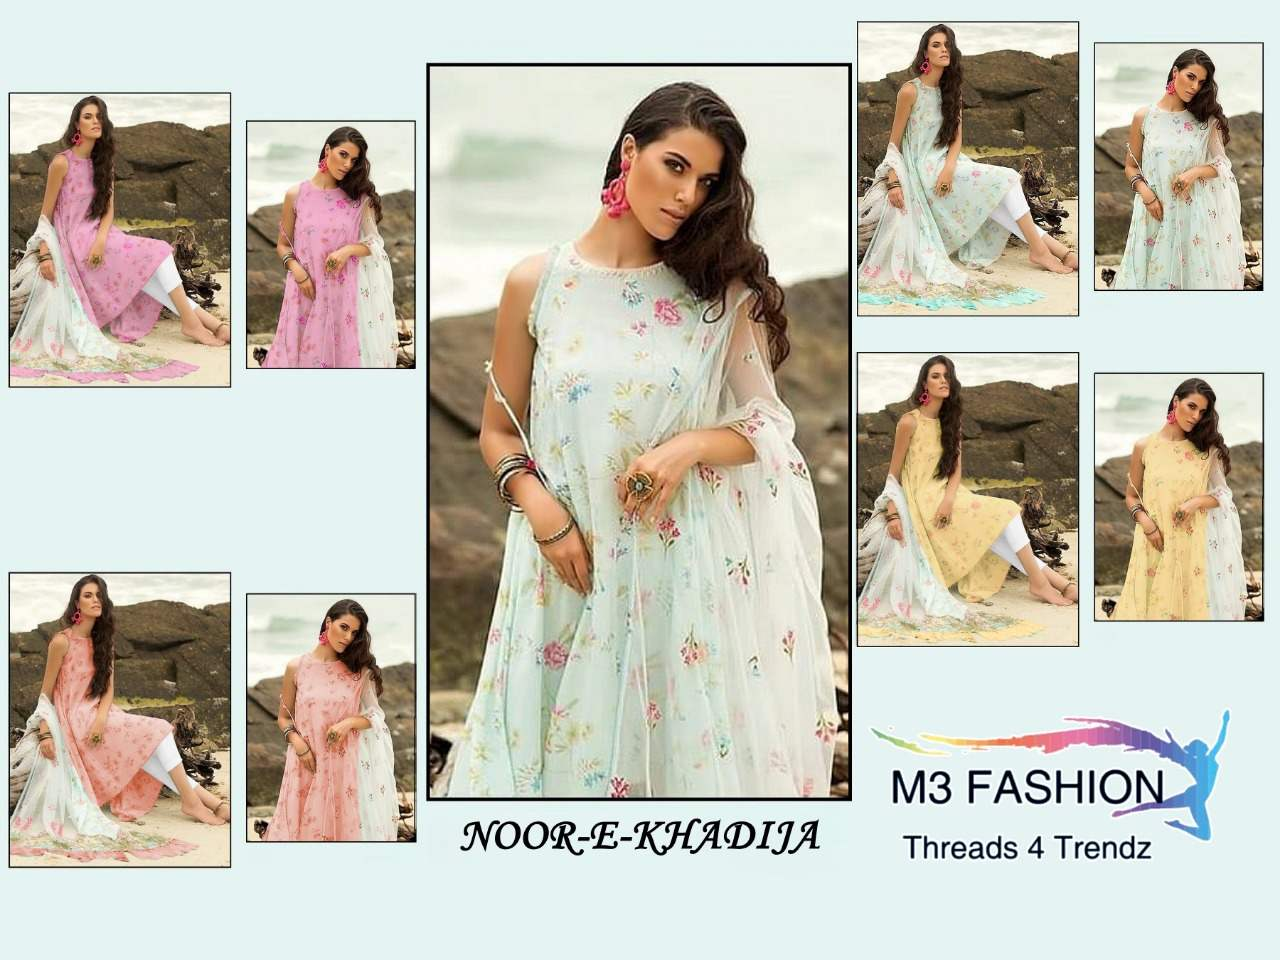 M3 Fashion Noor E Khadija collection 3